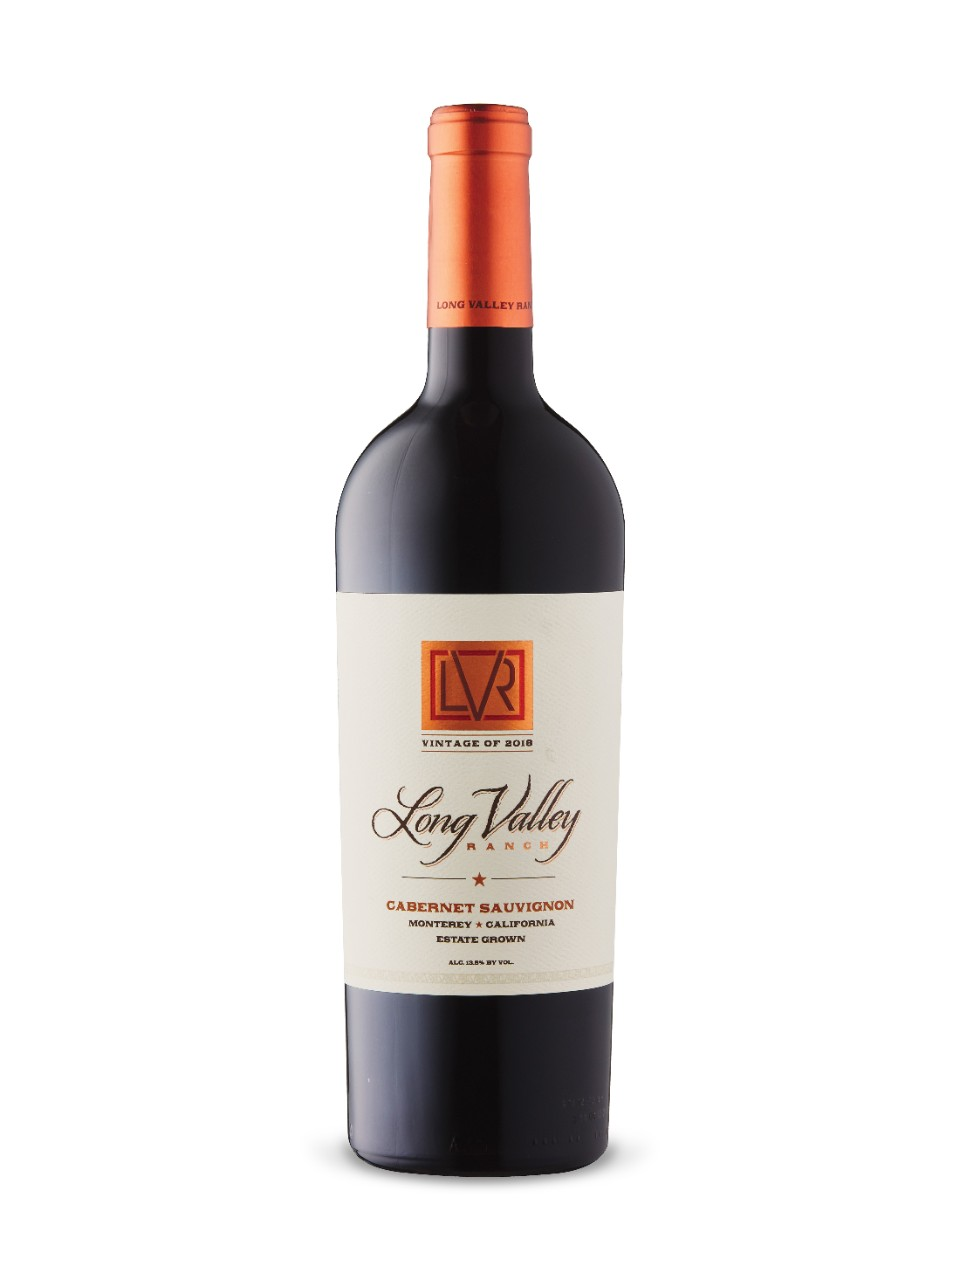 Long Valley Ranch Cabernet Sauvignon 2018 from LCBO